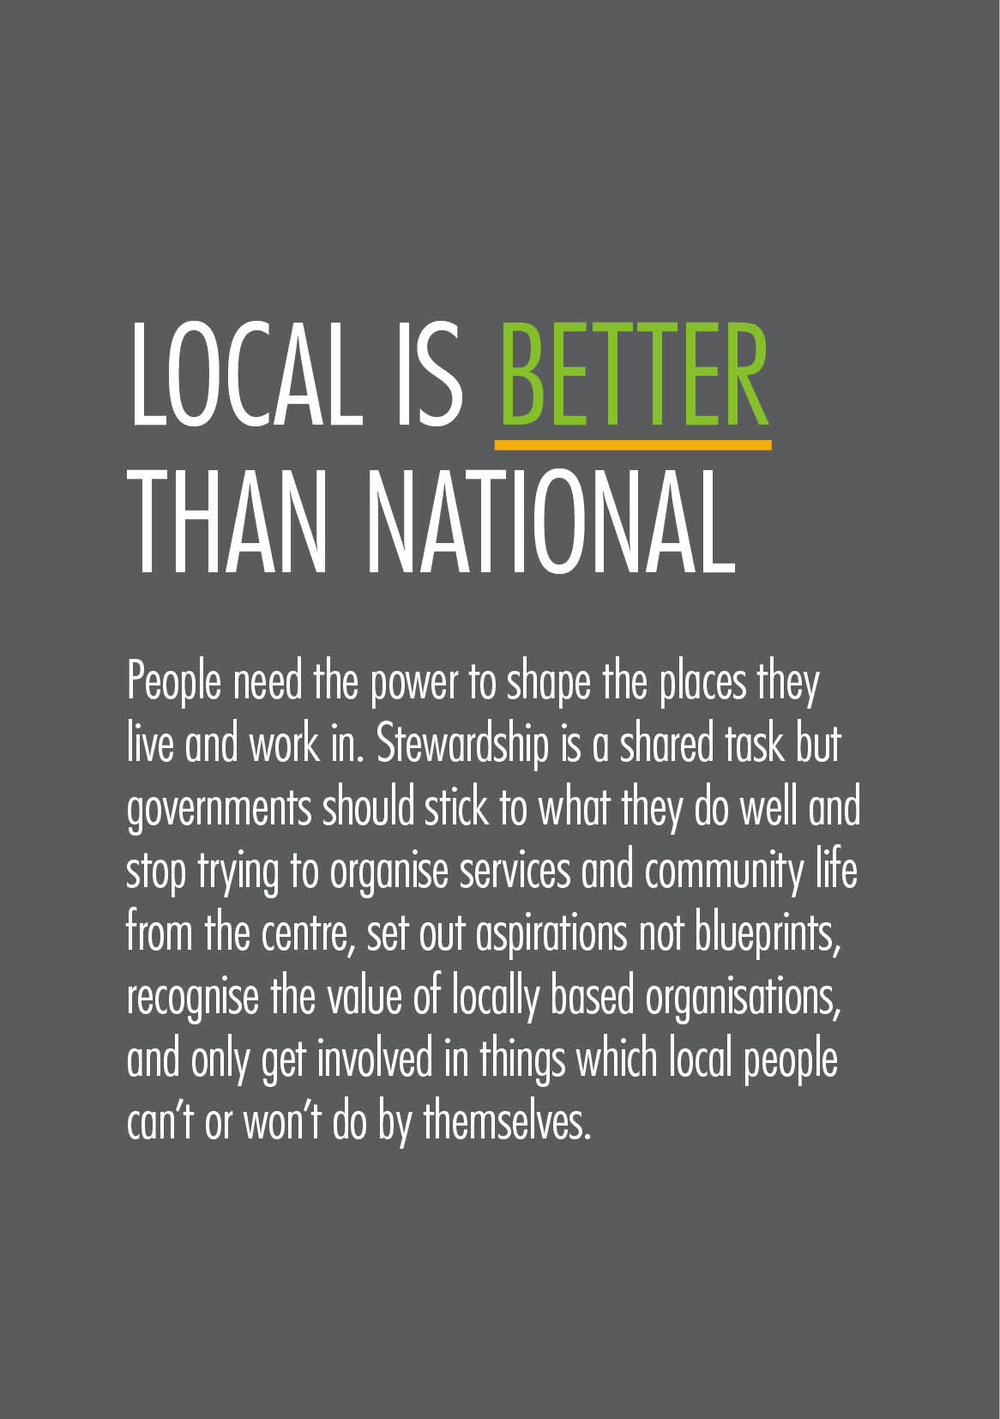 cdebf7f75707c Local is better than national — A Better Way